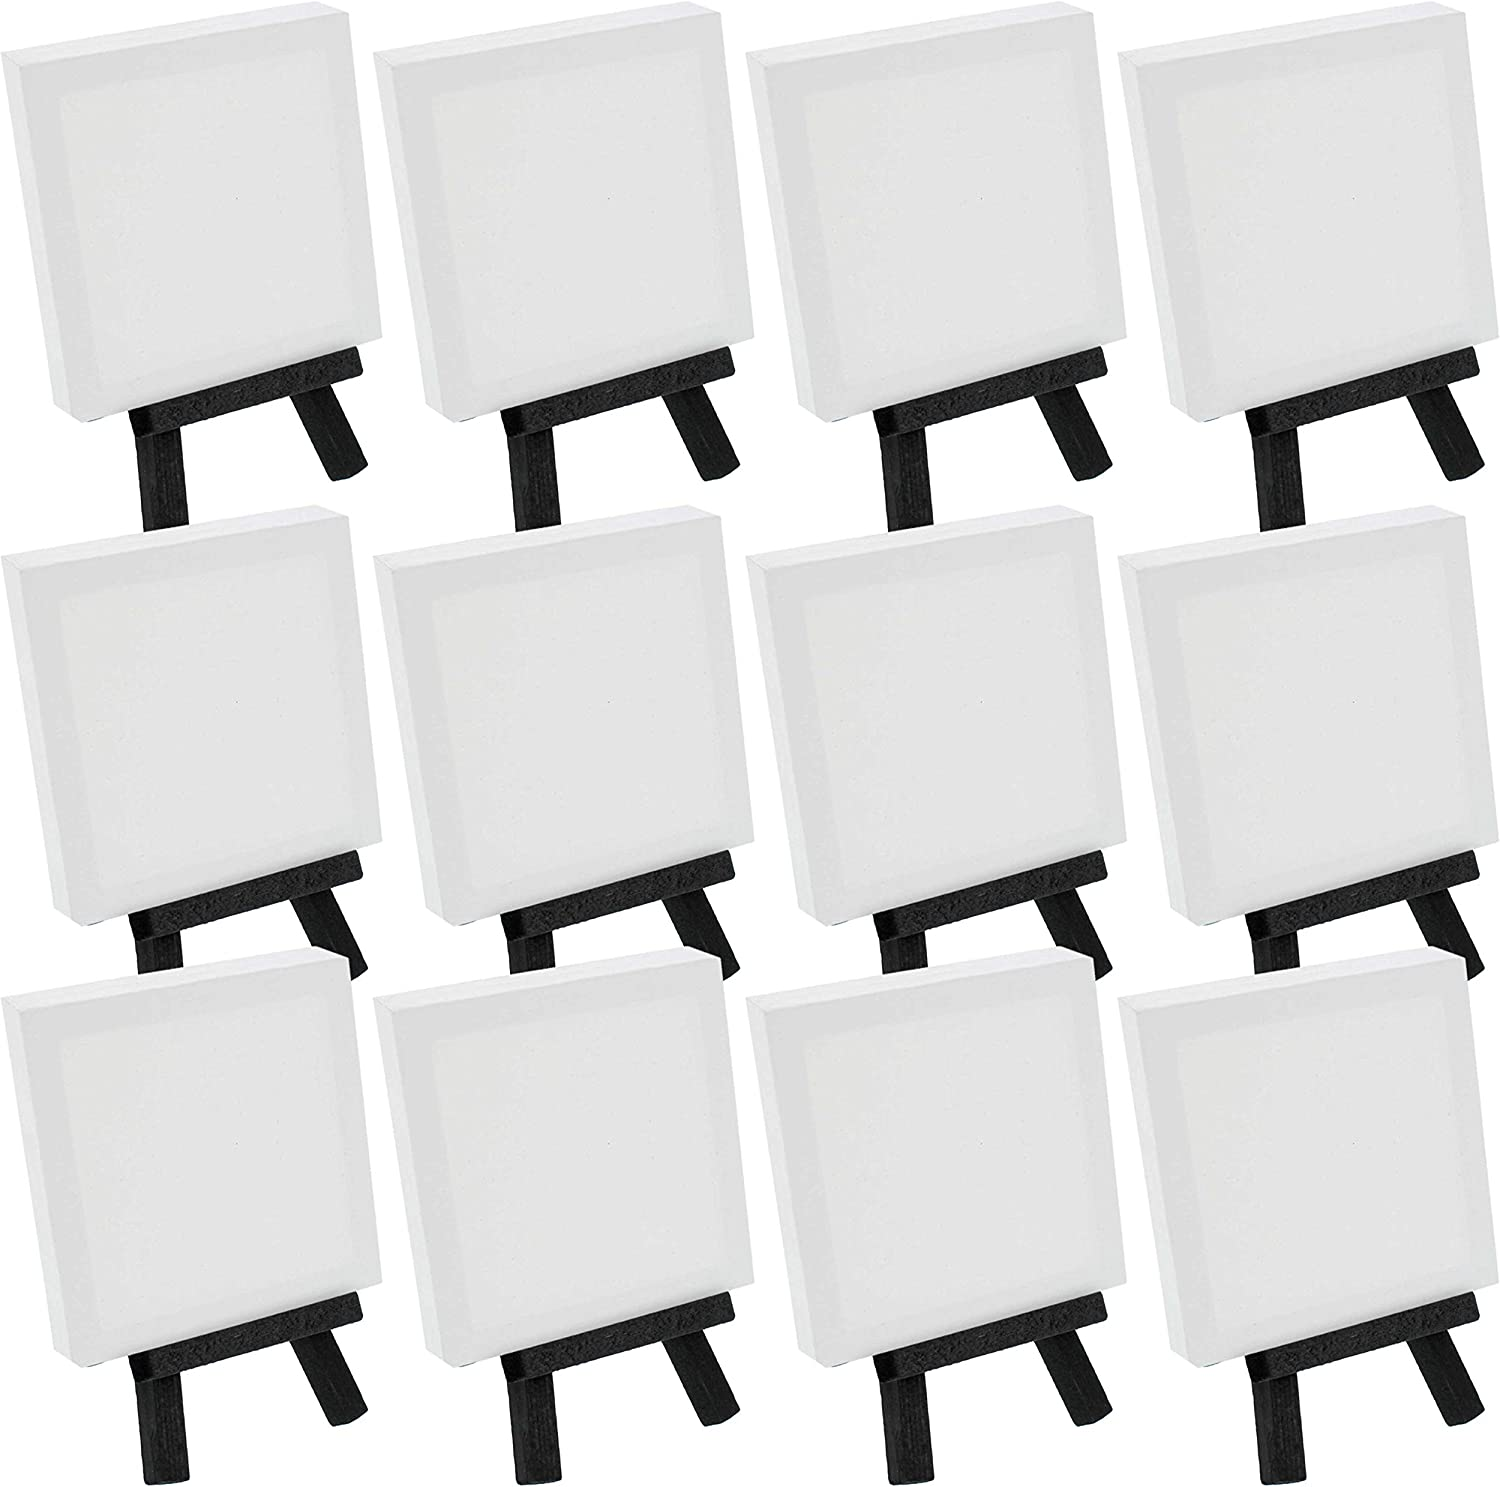 Noblik Artists 3 inch x3 inch Canvas /& 5 inch Easel Set Painting Craft Drawing 12 Canvases /& 12 Easels Set Contains